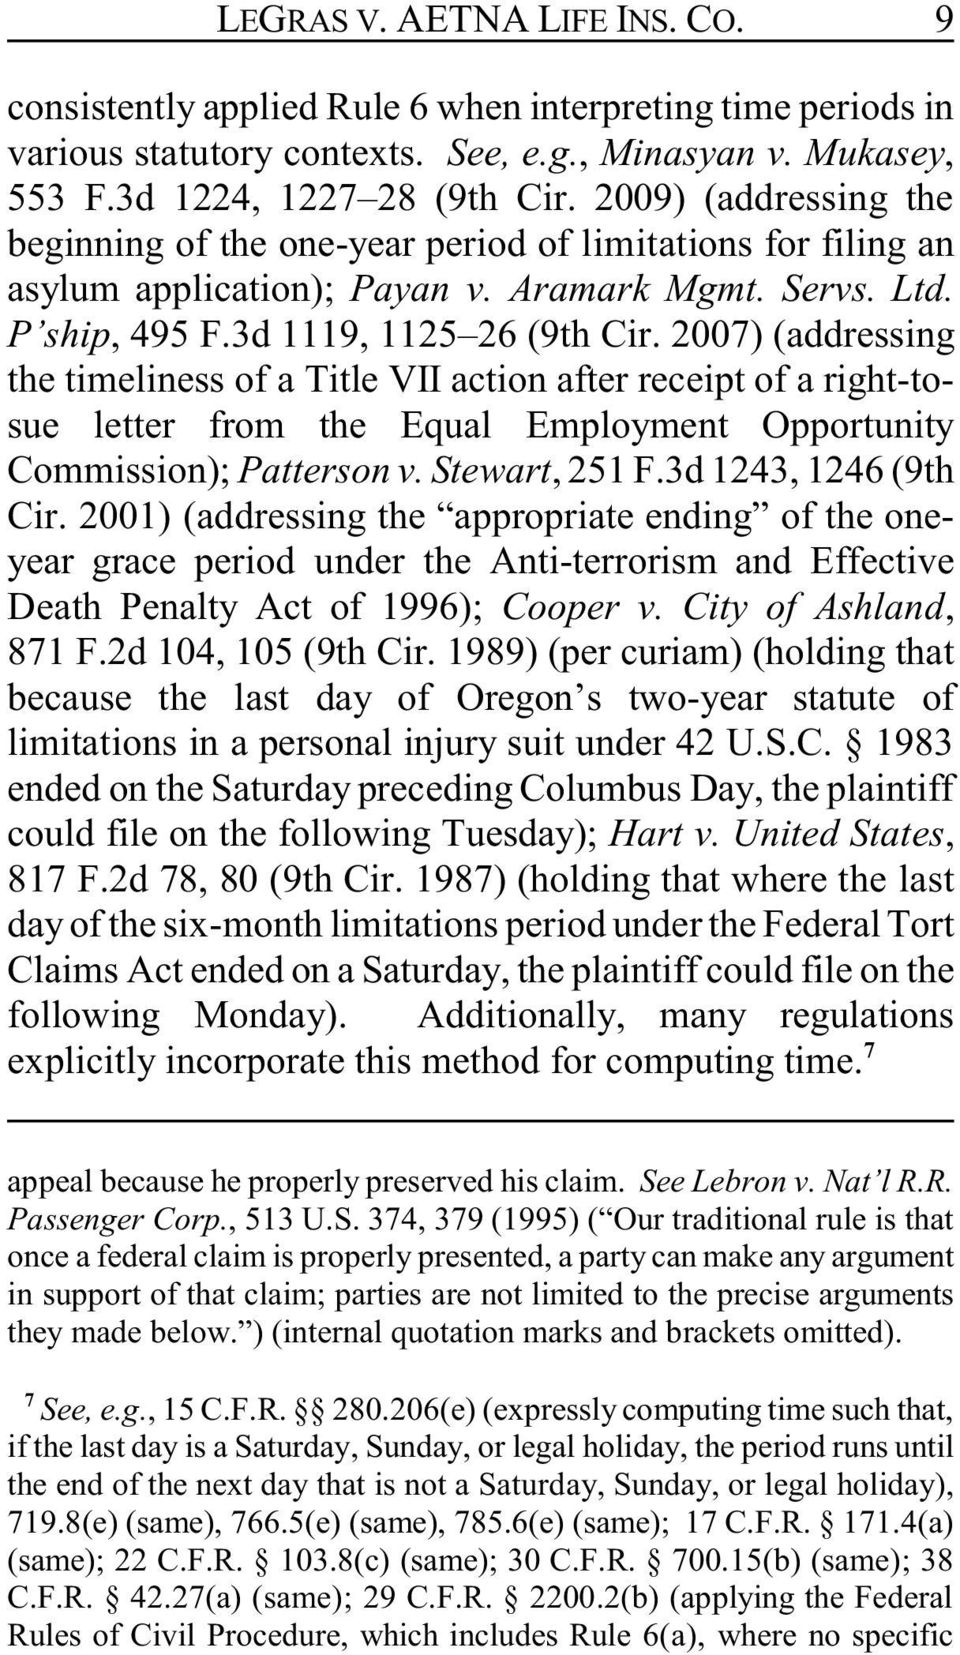 2007) (addressing the timeliness of a Title VII action after receipt of a right-tosue letter from the Equal Employment Opportunity Commission); Patterson v. Stewart, 251 F.3d 1243, 1246 (9th Cir.